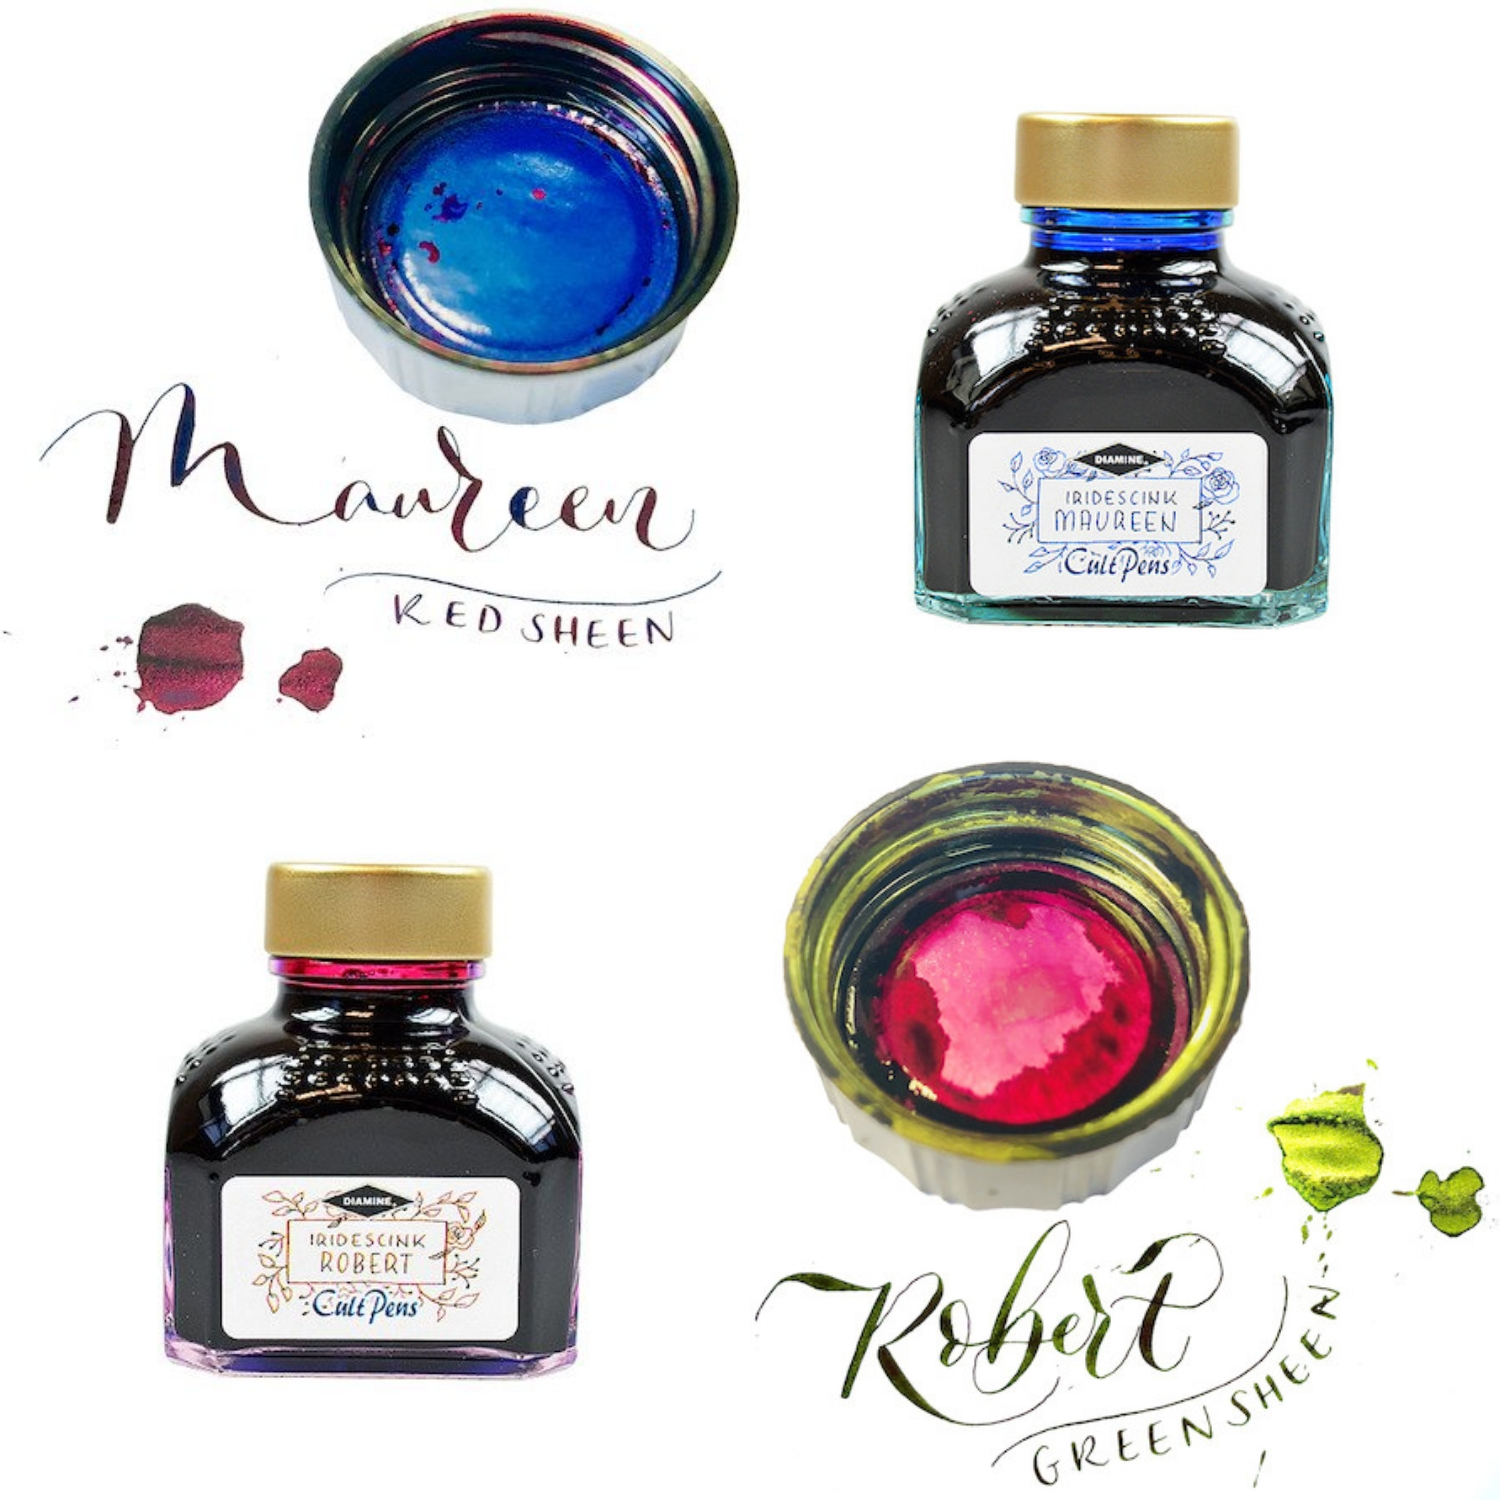 Diamine戴阿米墨水商店限定Iridescink超sheen墨水robert maureen